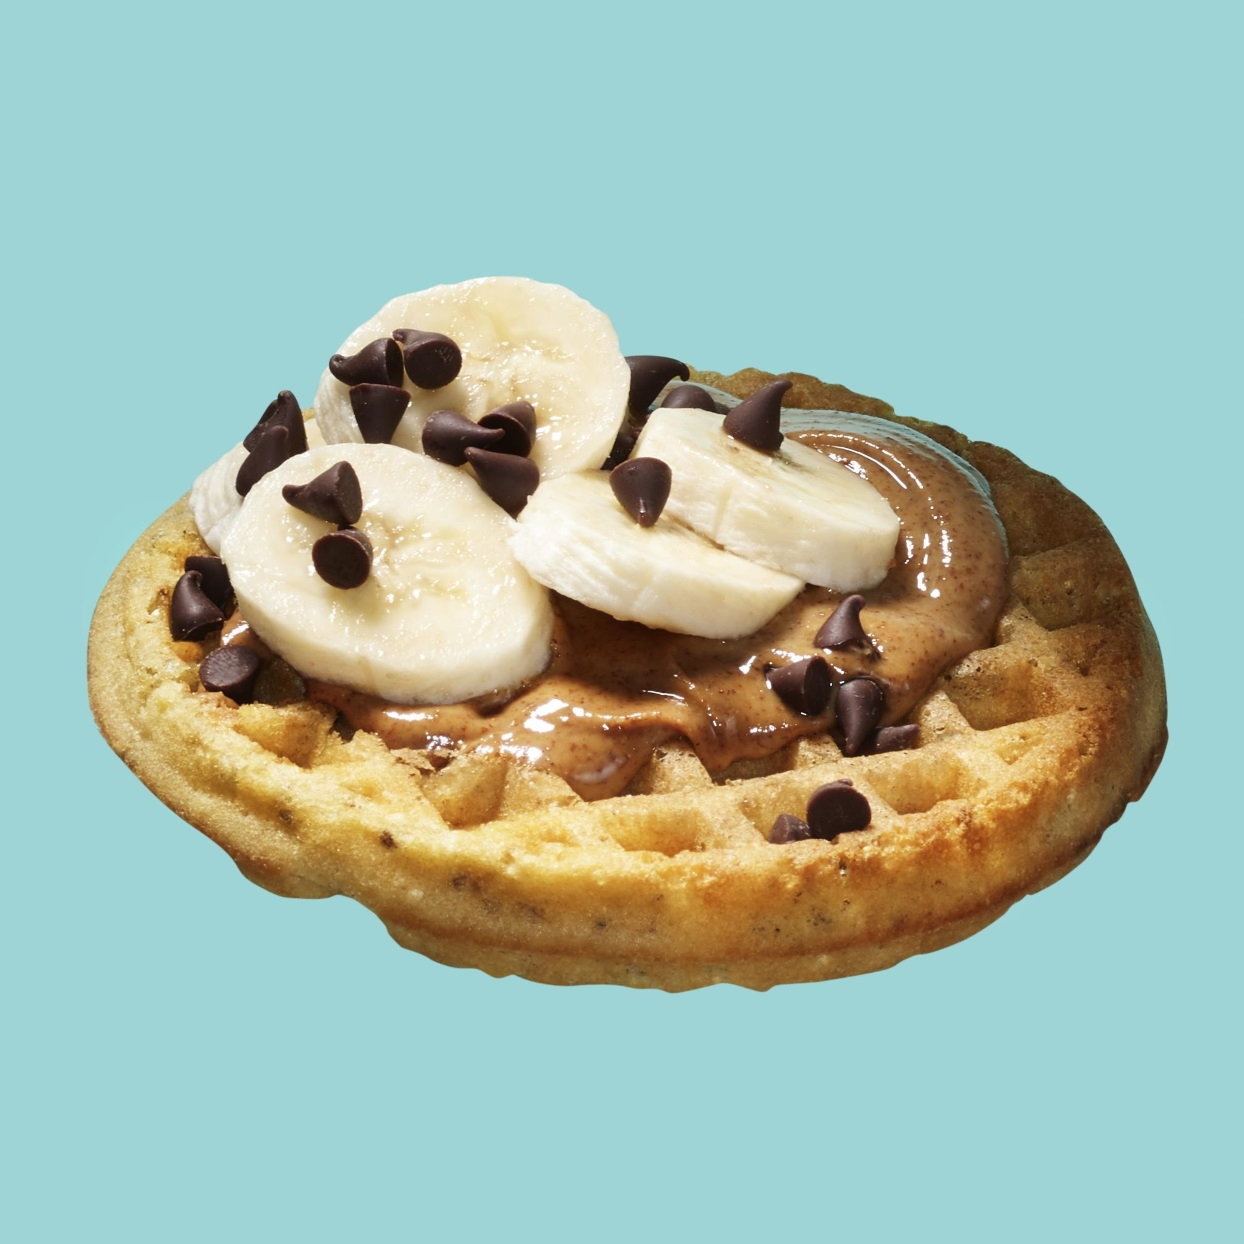 Waffle with Nut Butter, Banana & Chocolate Chips